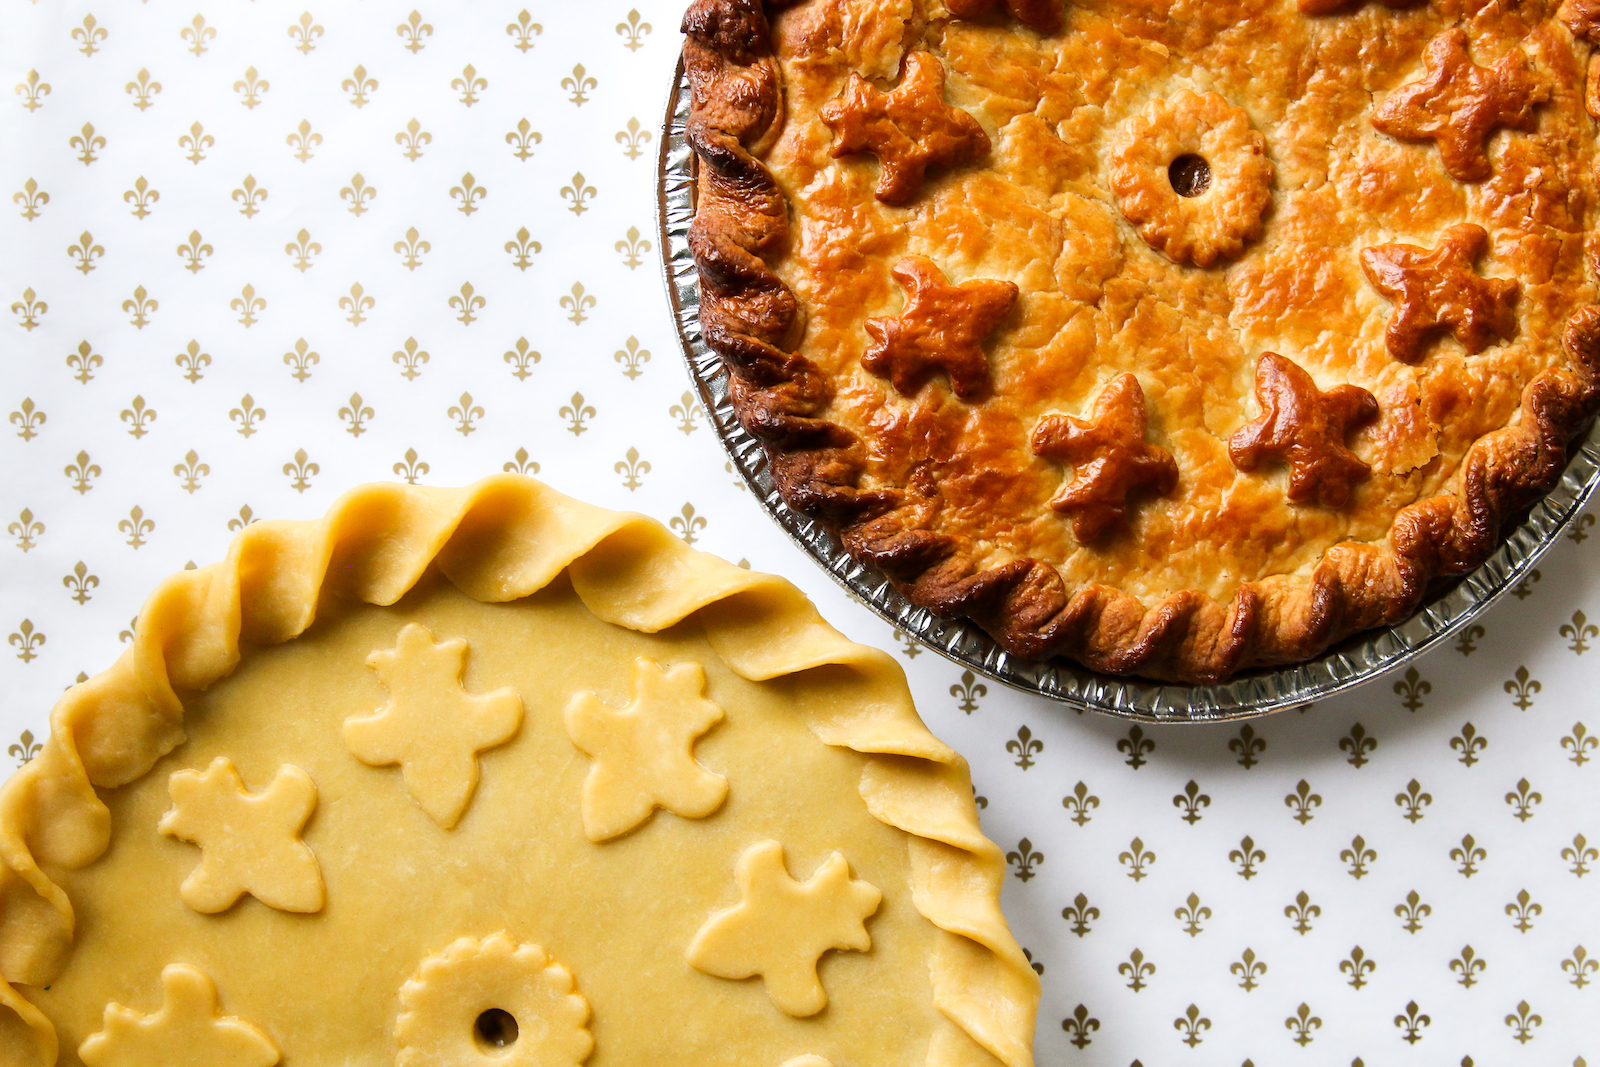 St. Lawrence Announces New Take-Home Packages, Tourtières and Tarte au Sucre